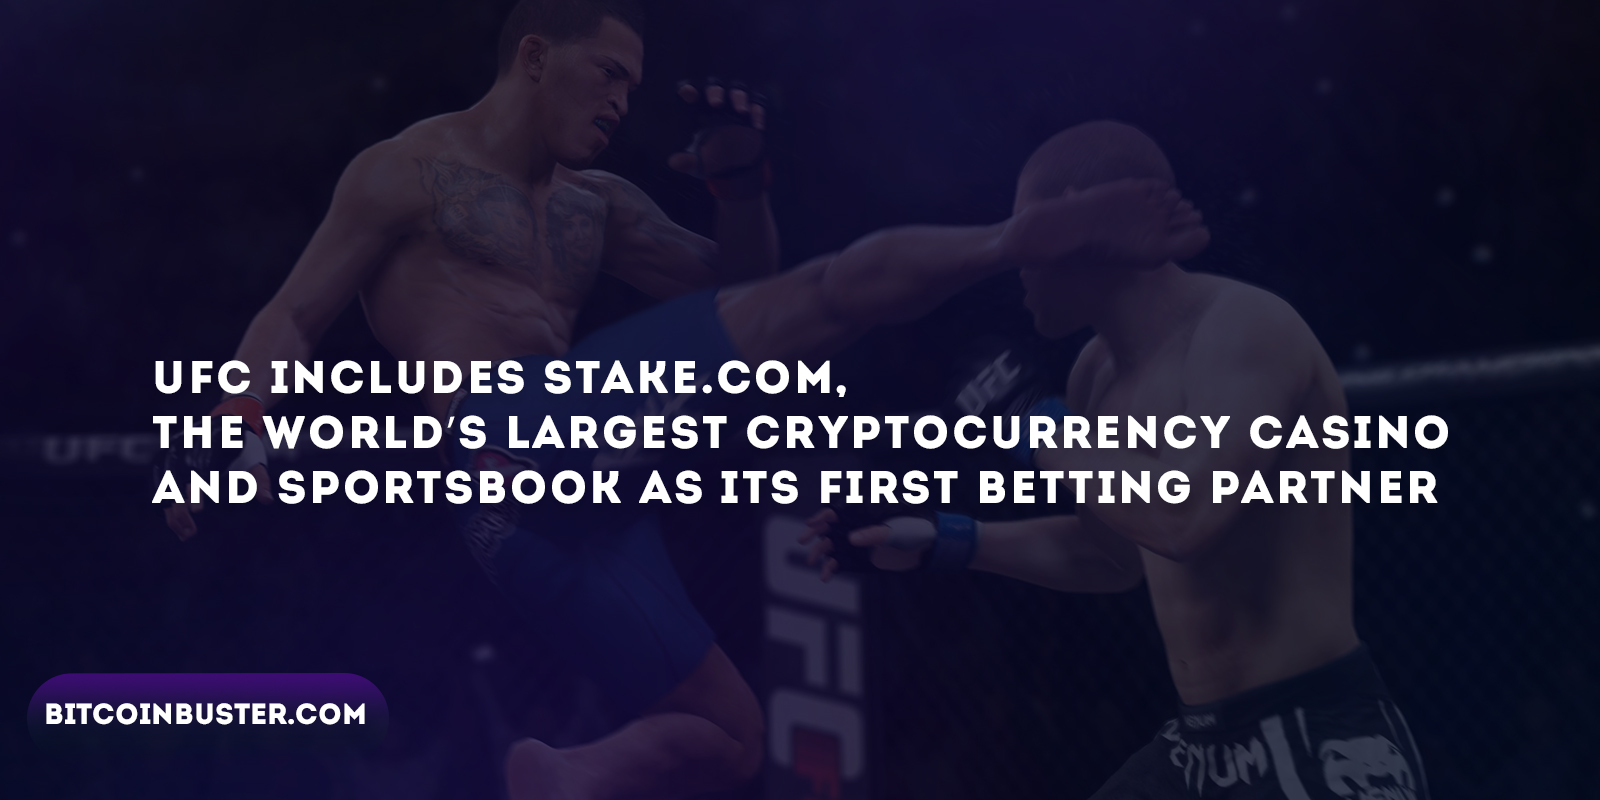 UFC includes Stake.com, the world's largest cryptocurrency casino and sportsbook as its first betting partner